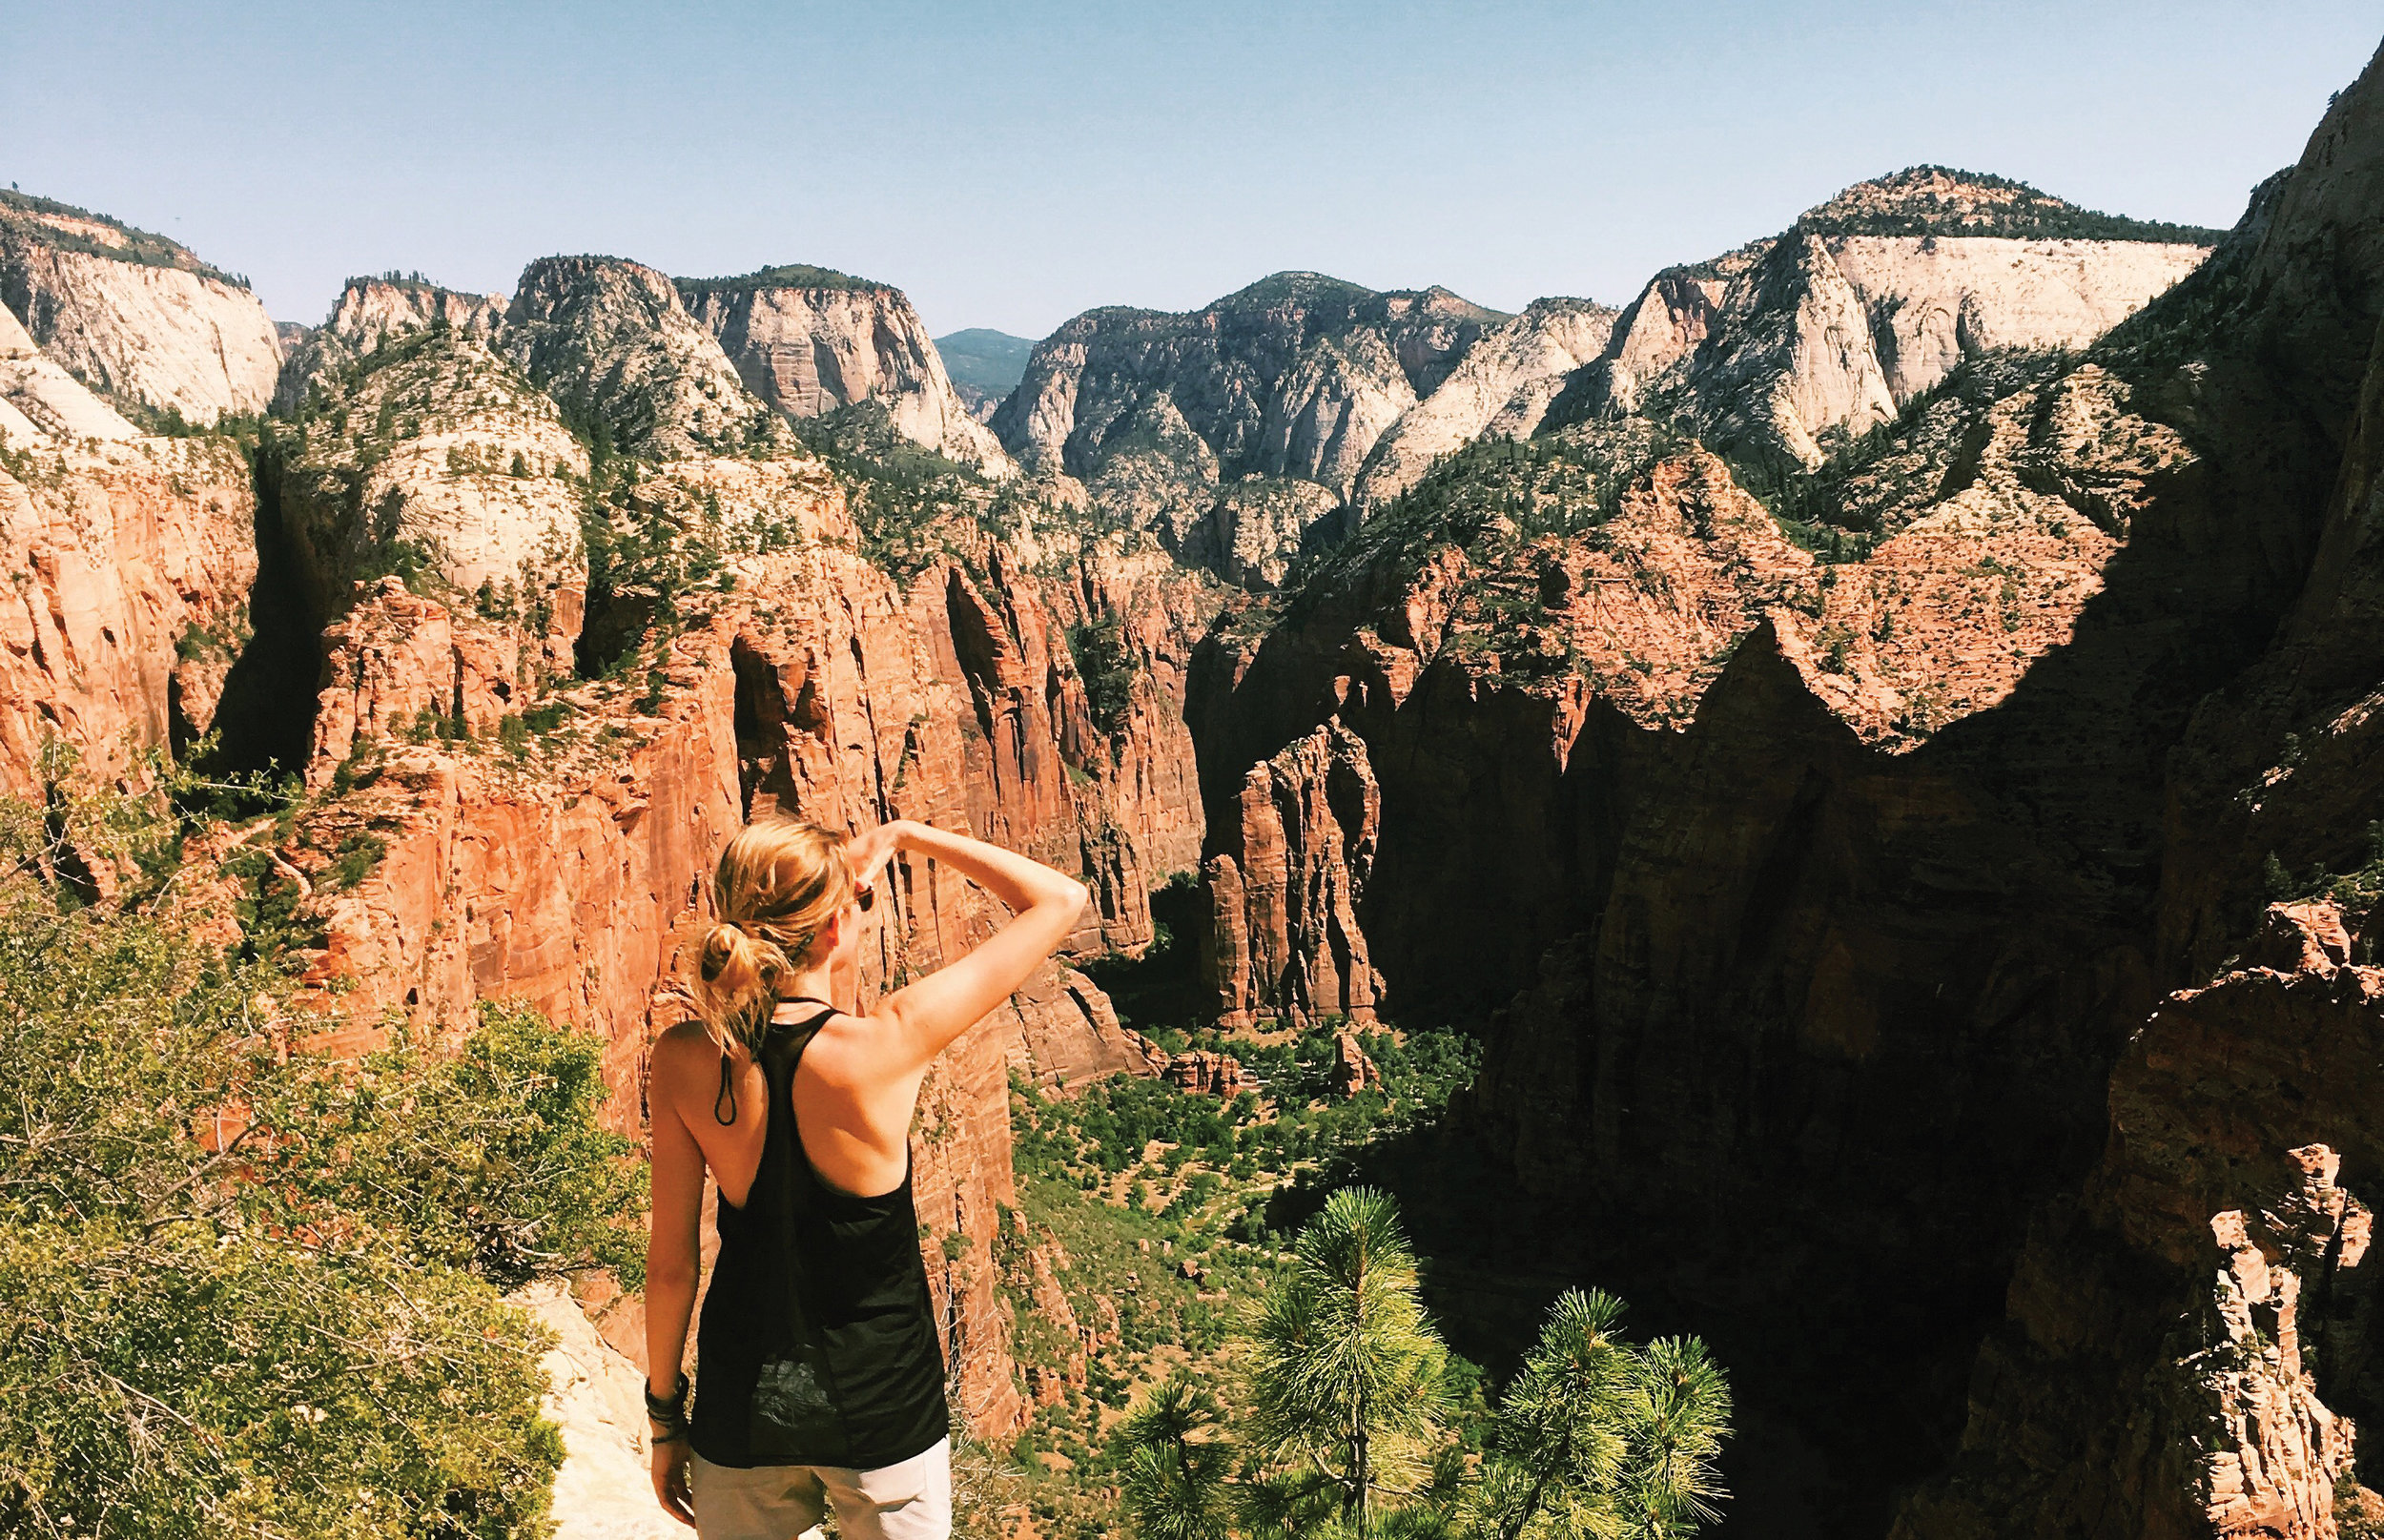 Kayla at Zion National Park UT  Daytripper 60 Days on the Road Exploring America's National Parks